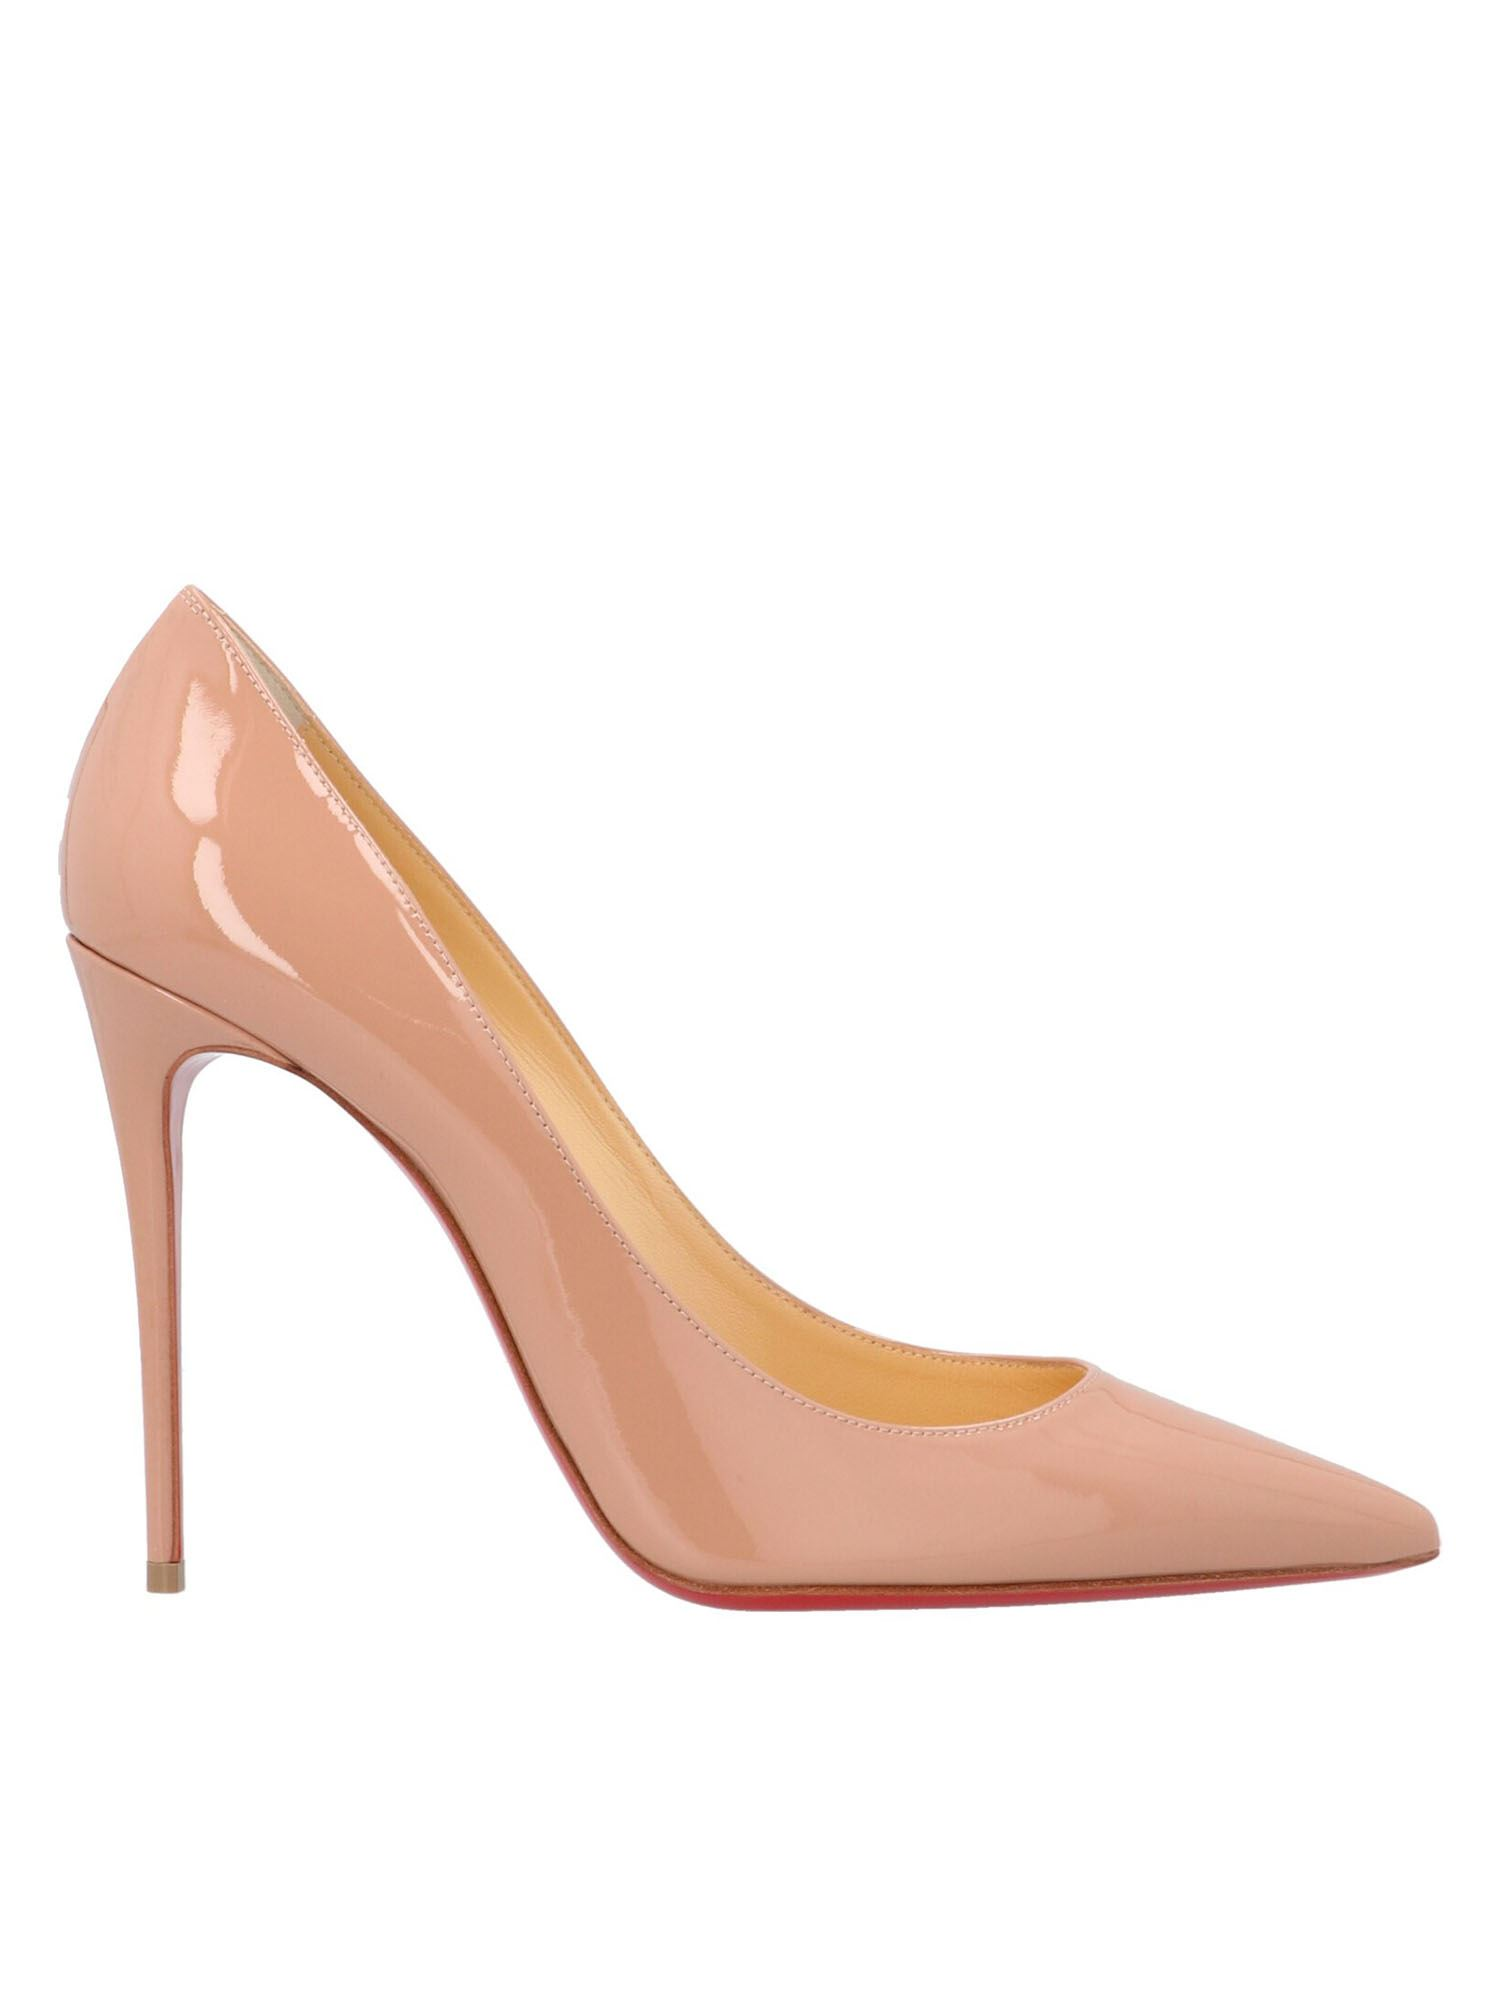 Christian Louboutin KATE 100 PATENT LEATHER PUMP IN NUDE COLOR